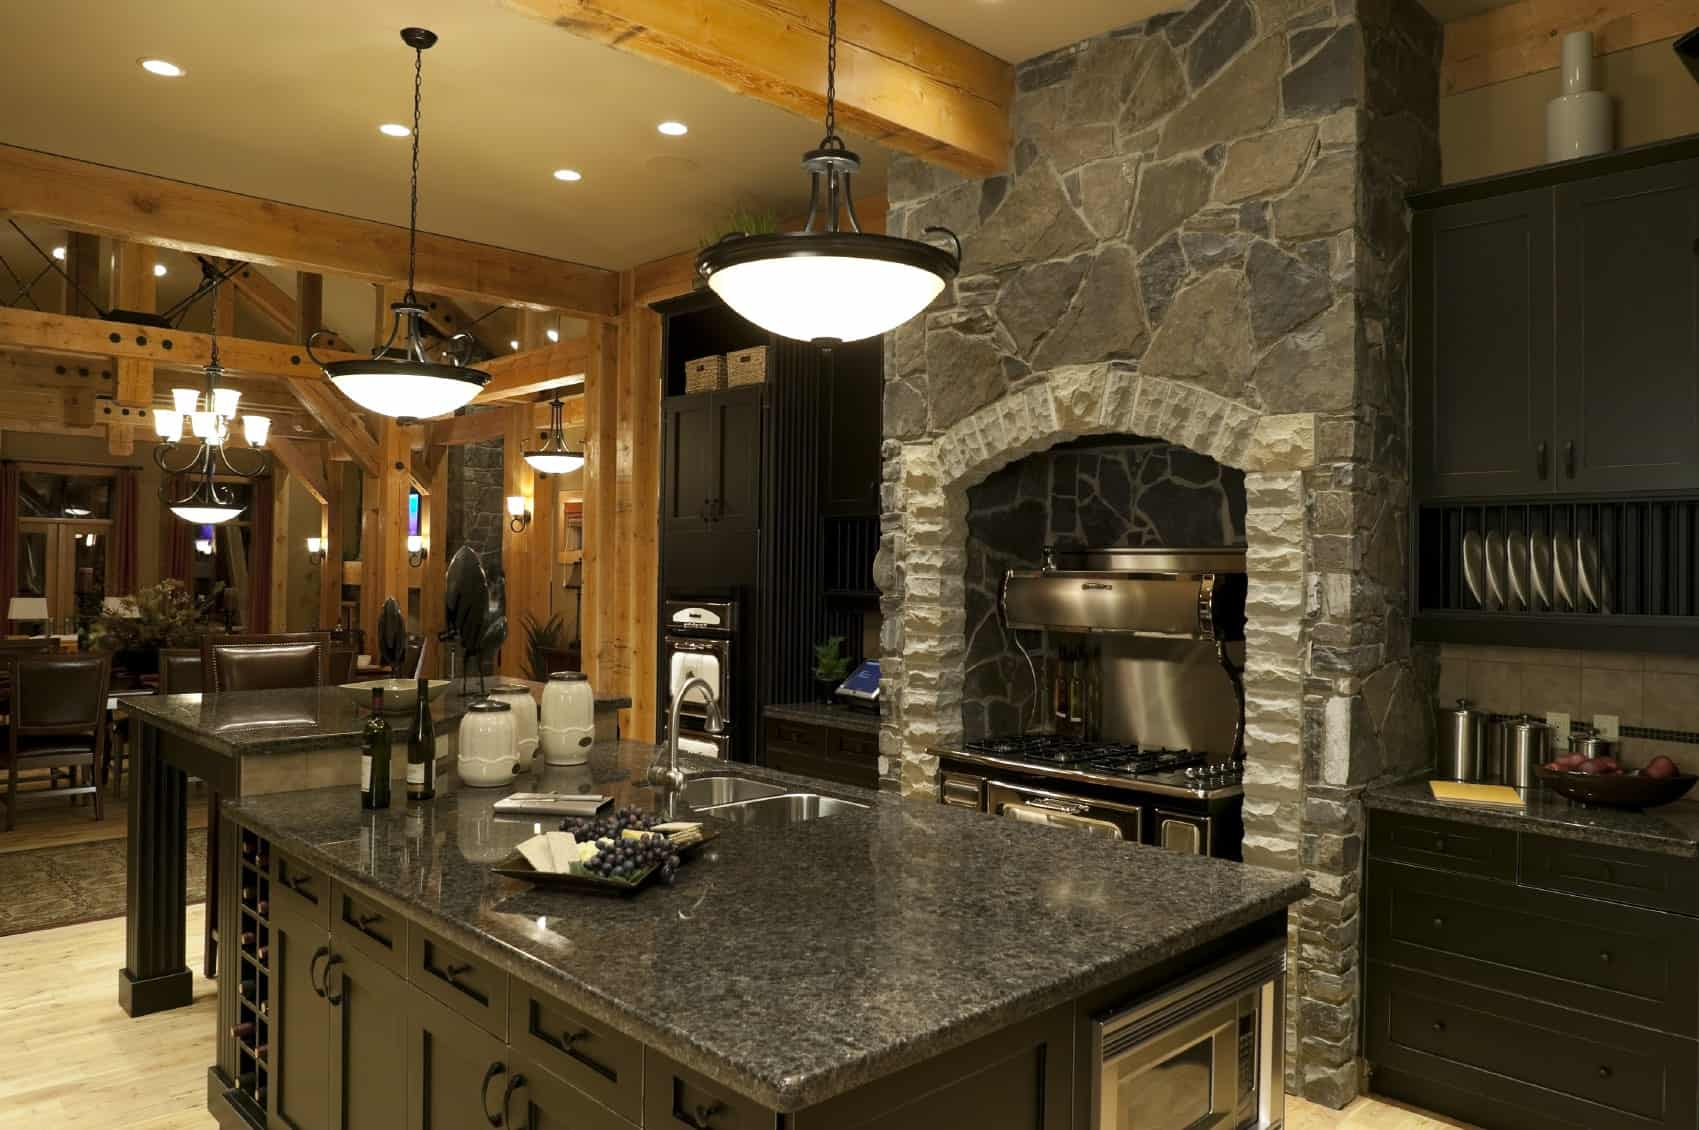 Black-themed kitchen featuring a black island with a gray granite countertop. It also offers black kitchen counters and cabinetry.